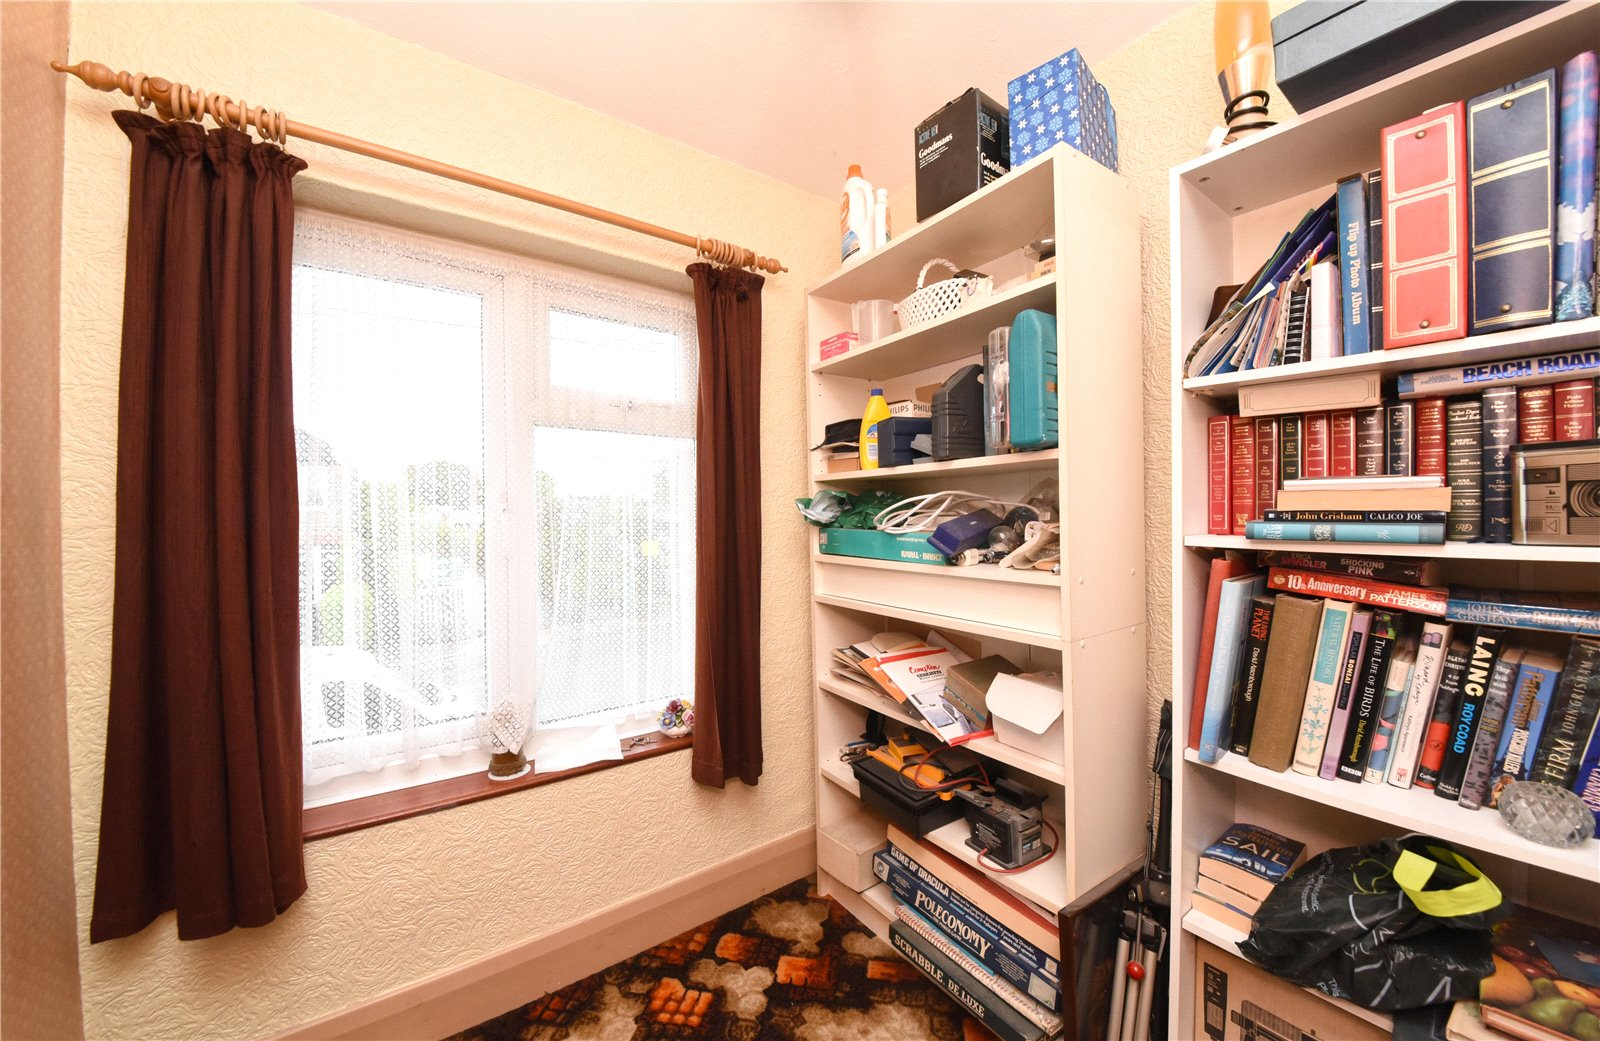 3 bed house for sale in Whetstone, N20 0DG 9